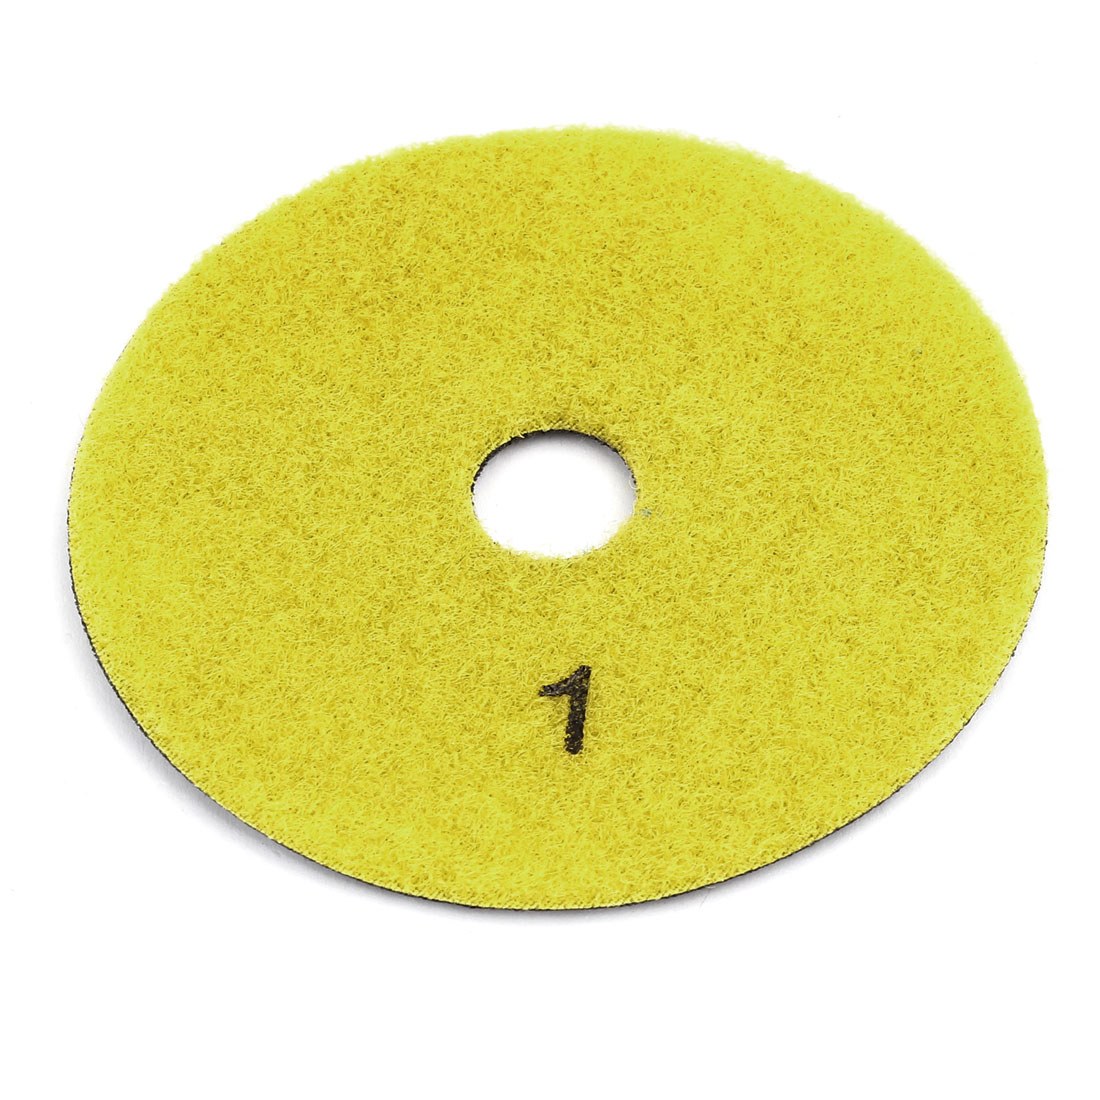 "Yellow Gray Dry Wet Diamond Polishing Pad Disc 3.9"" Dia for Floor Grinding"